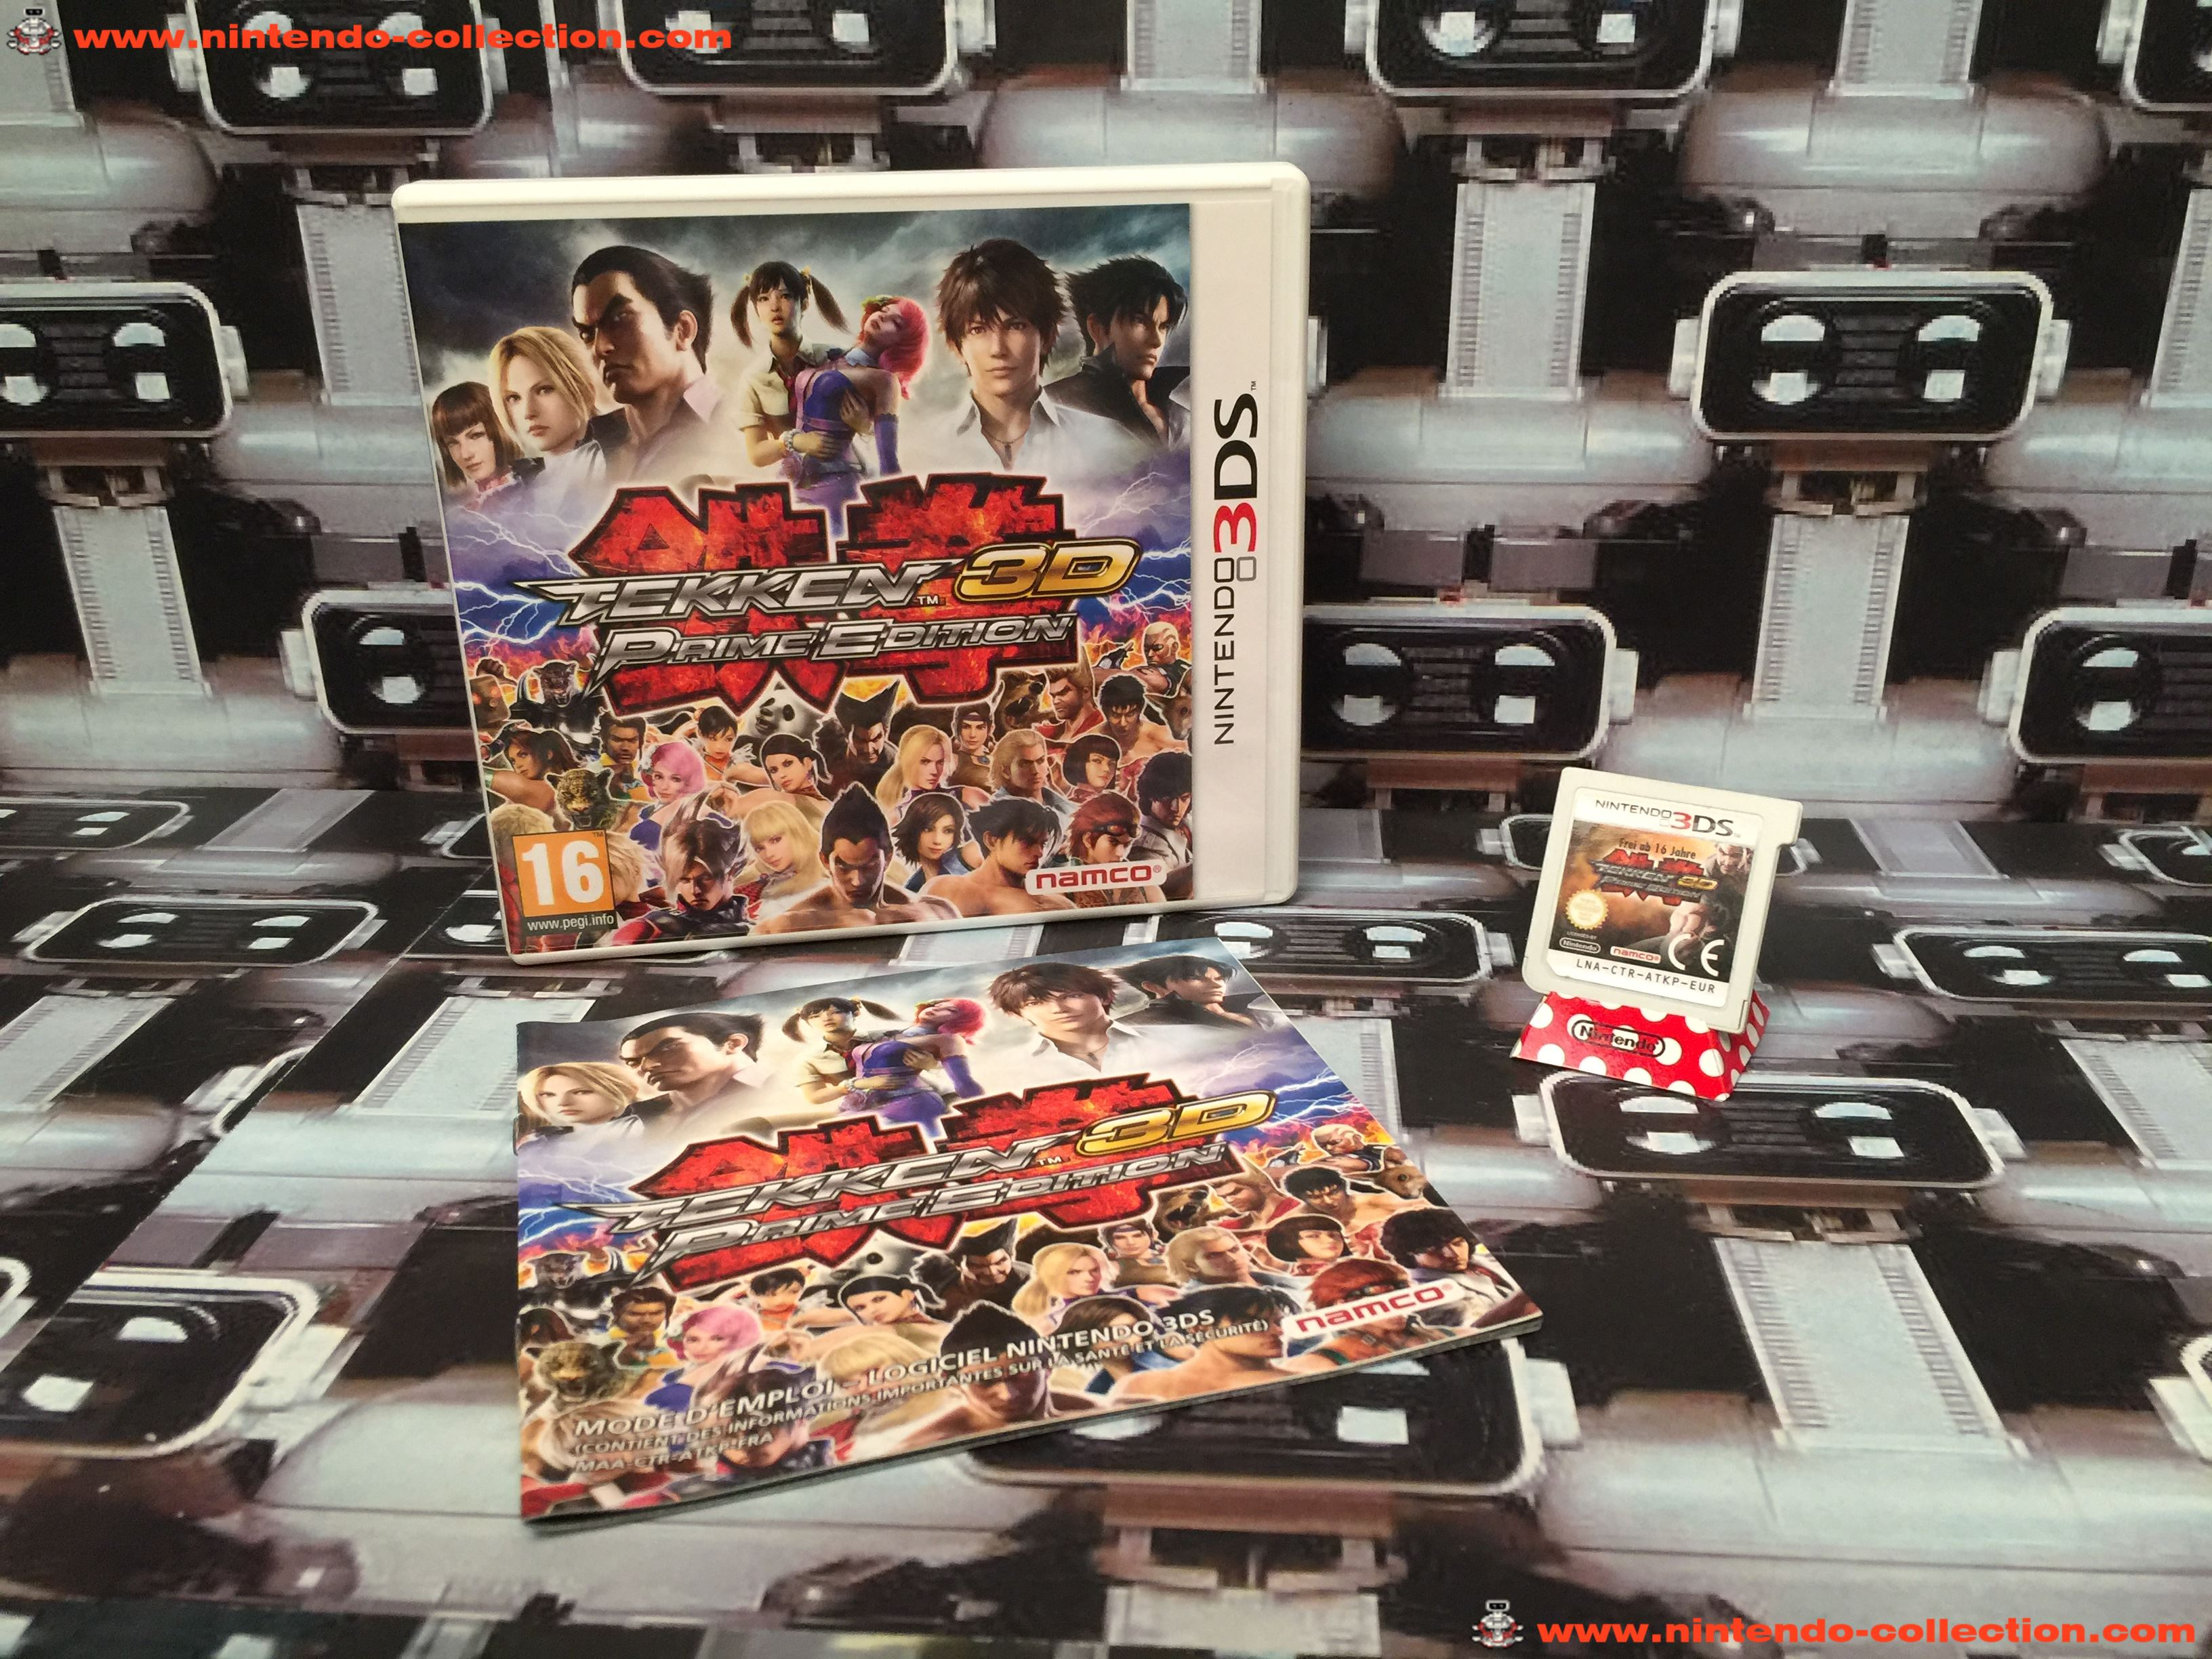 www.nintendo-collection.com - Nintendo 3DS Jeux Game Tekken 3D Prime Edition